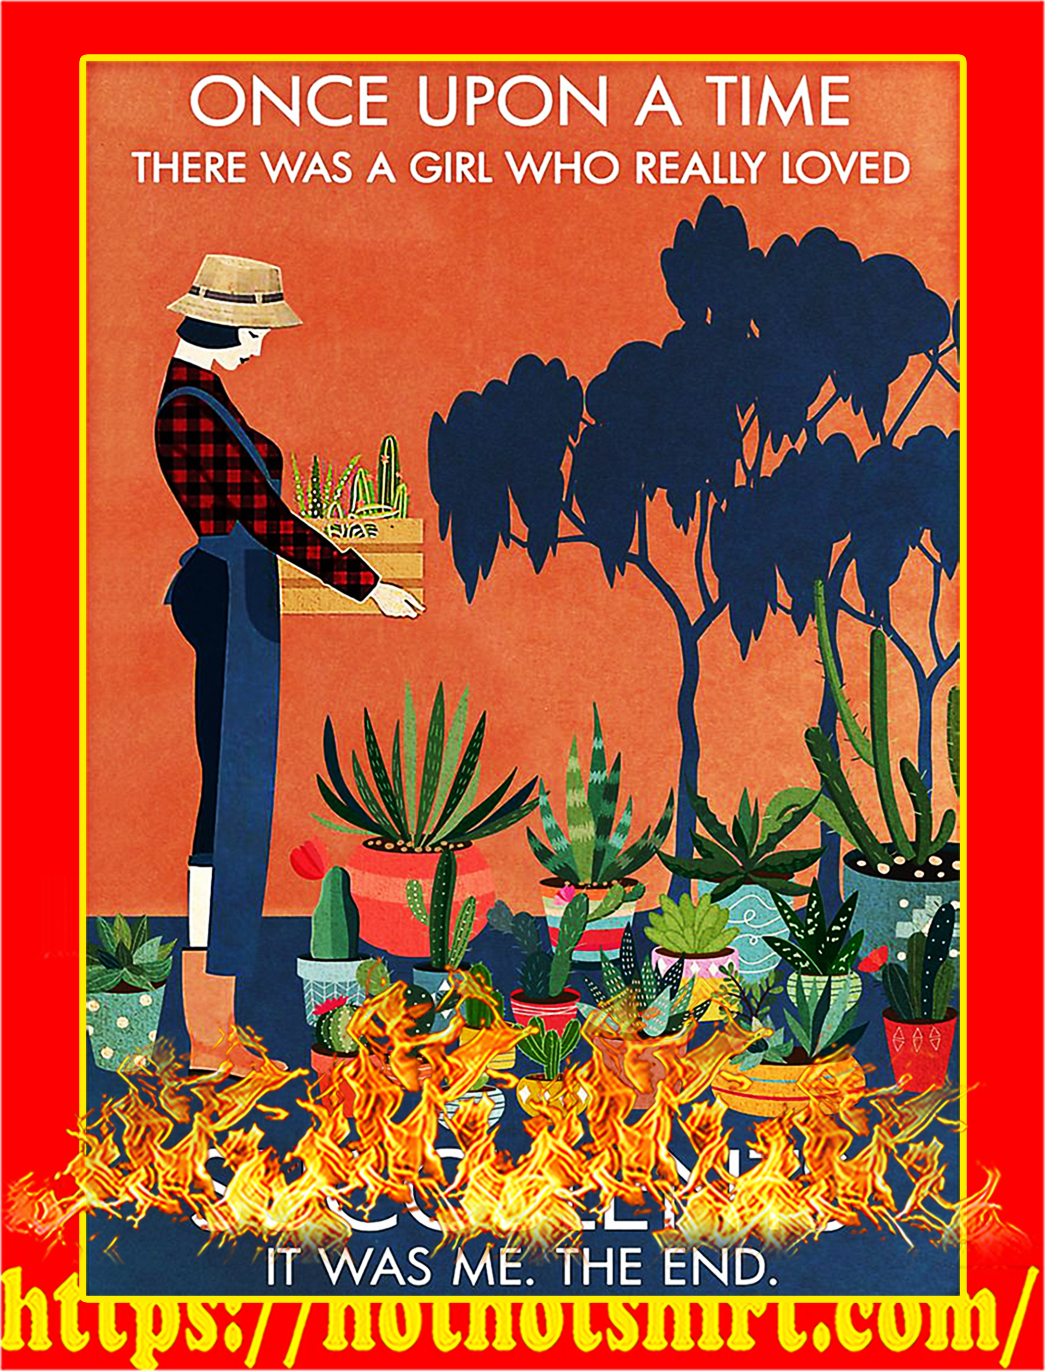 Once upon a time there was a girl loved succulents poster - A1